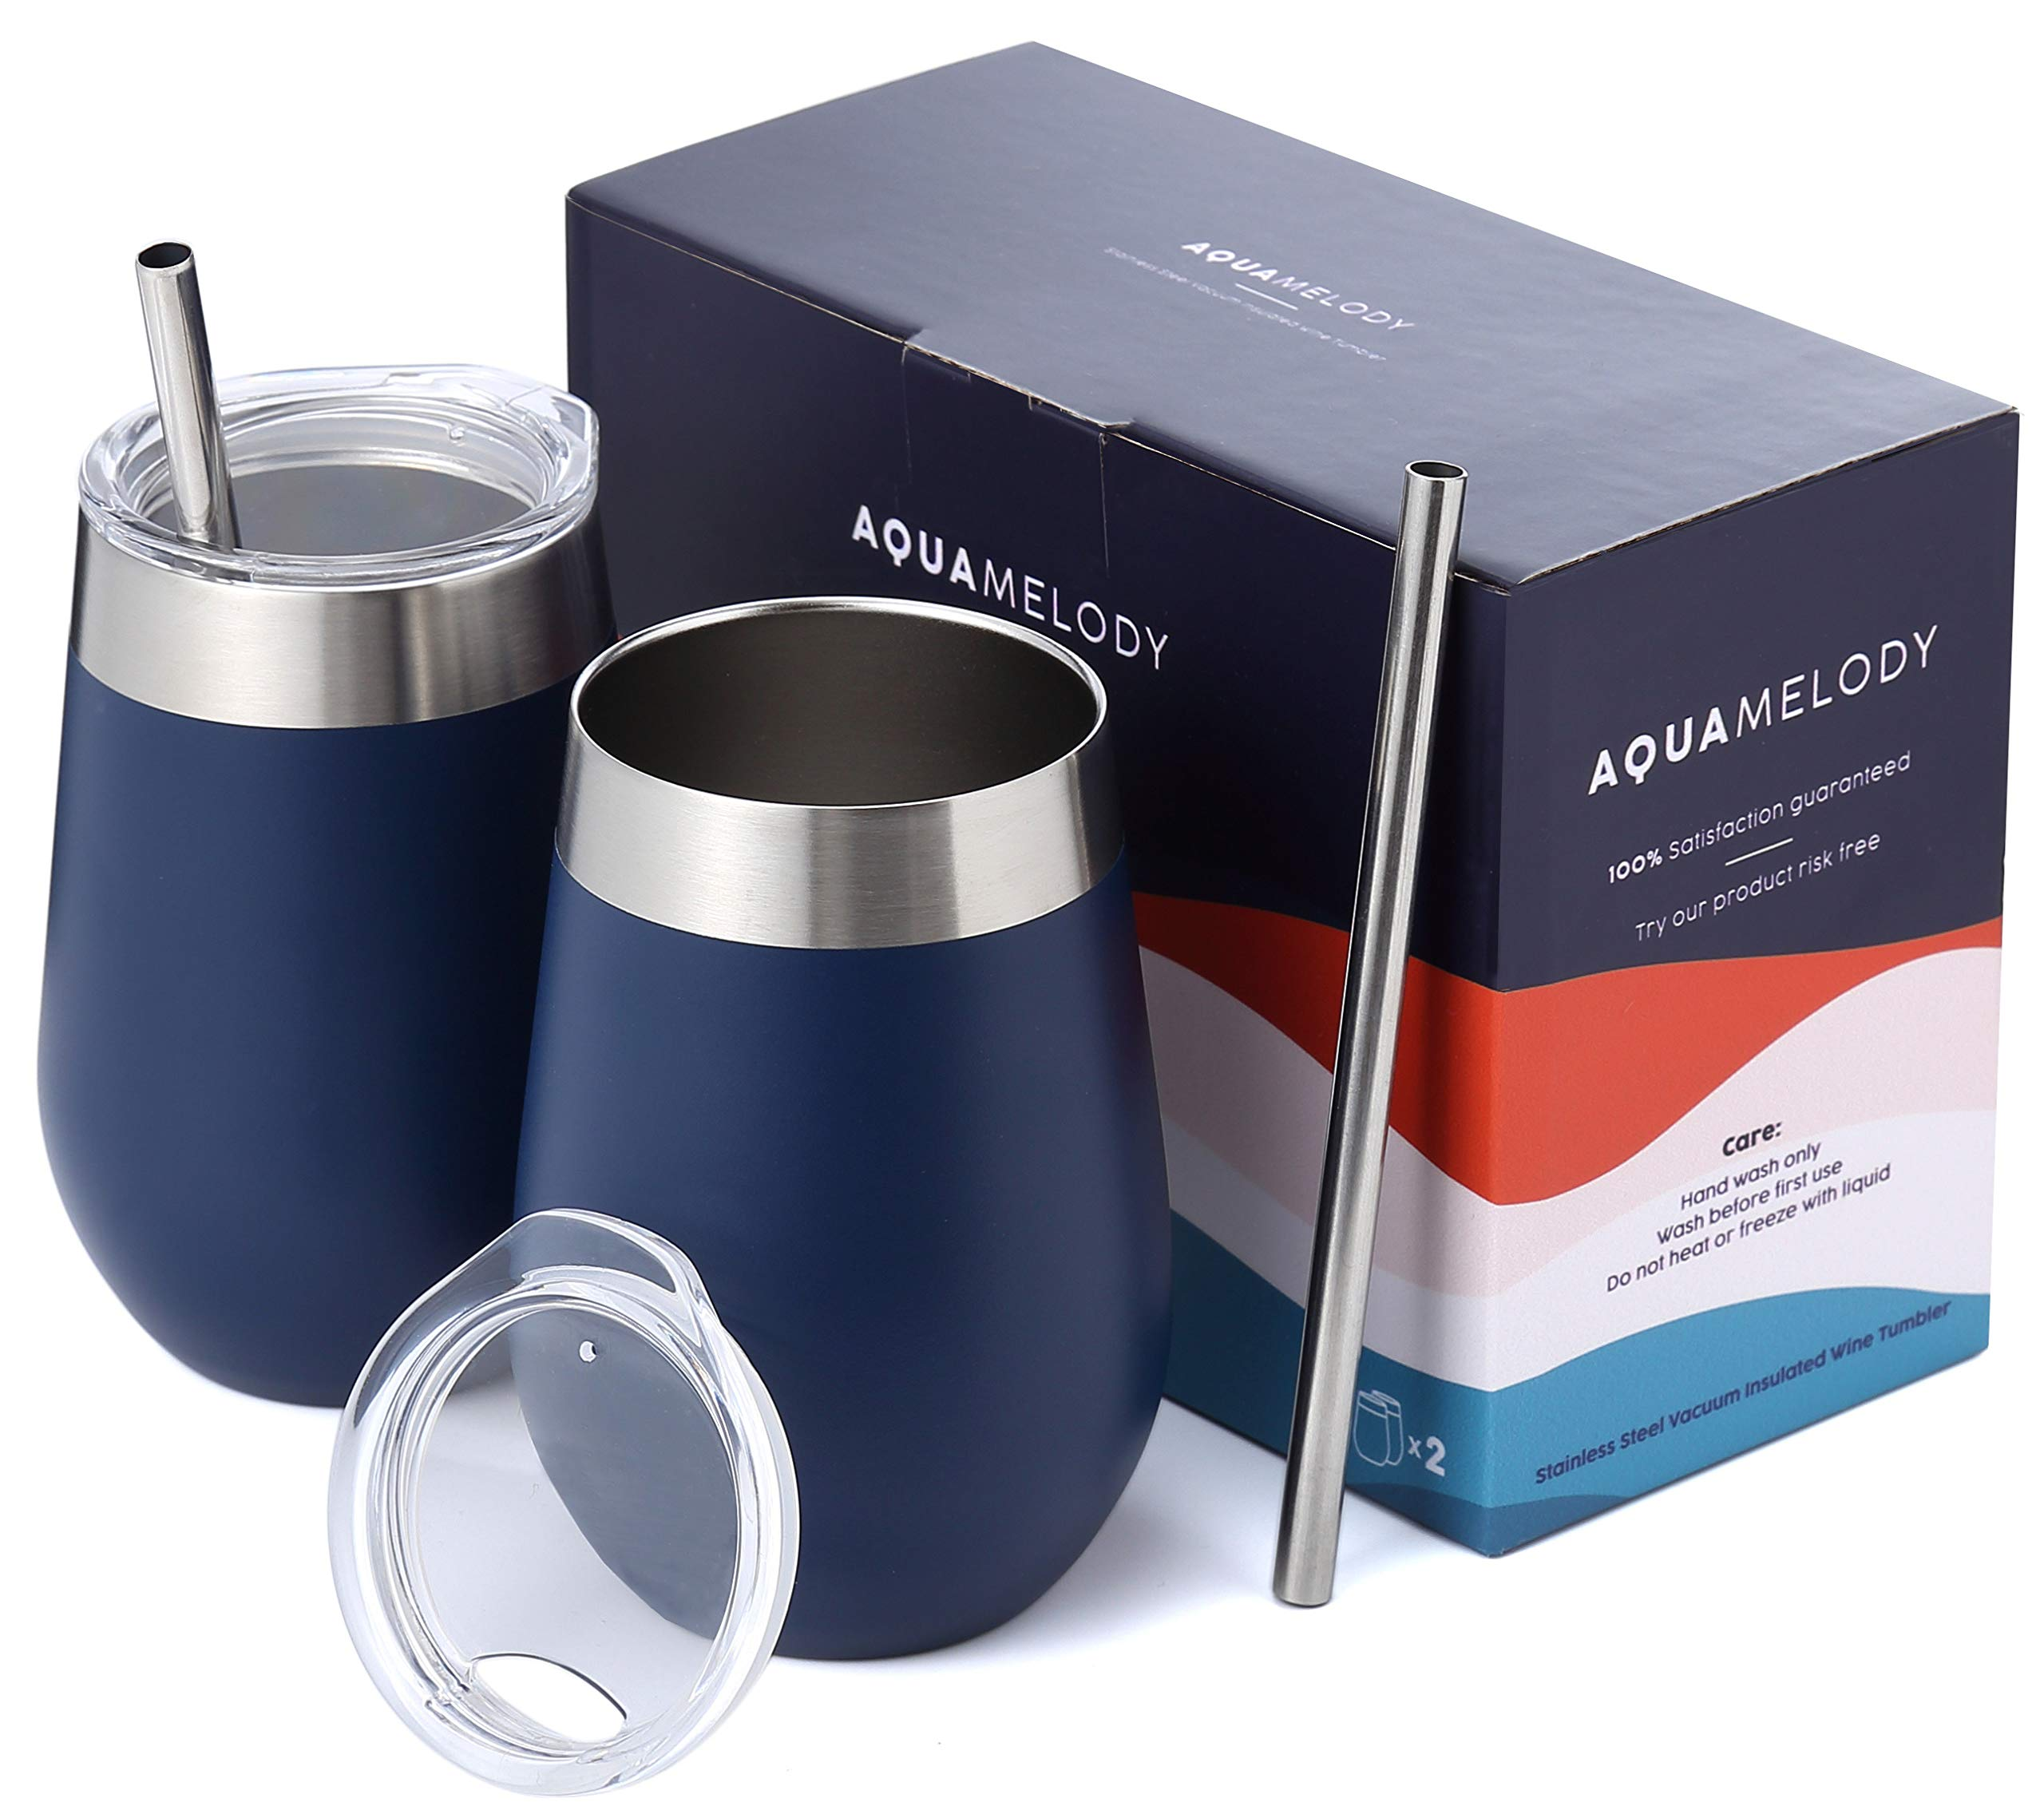 Aqua Melody Double Insulated Stainless Steel Wine Glass | 12oz Wine Tumbler | Powder Coated | Unbreakable (Includes 2 Steel Straws and 2 Lids) (Navy, 12oz)